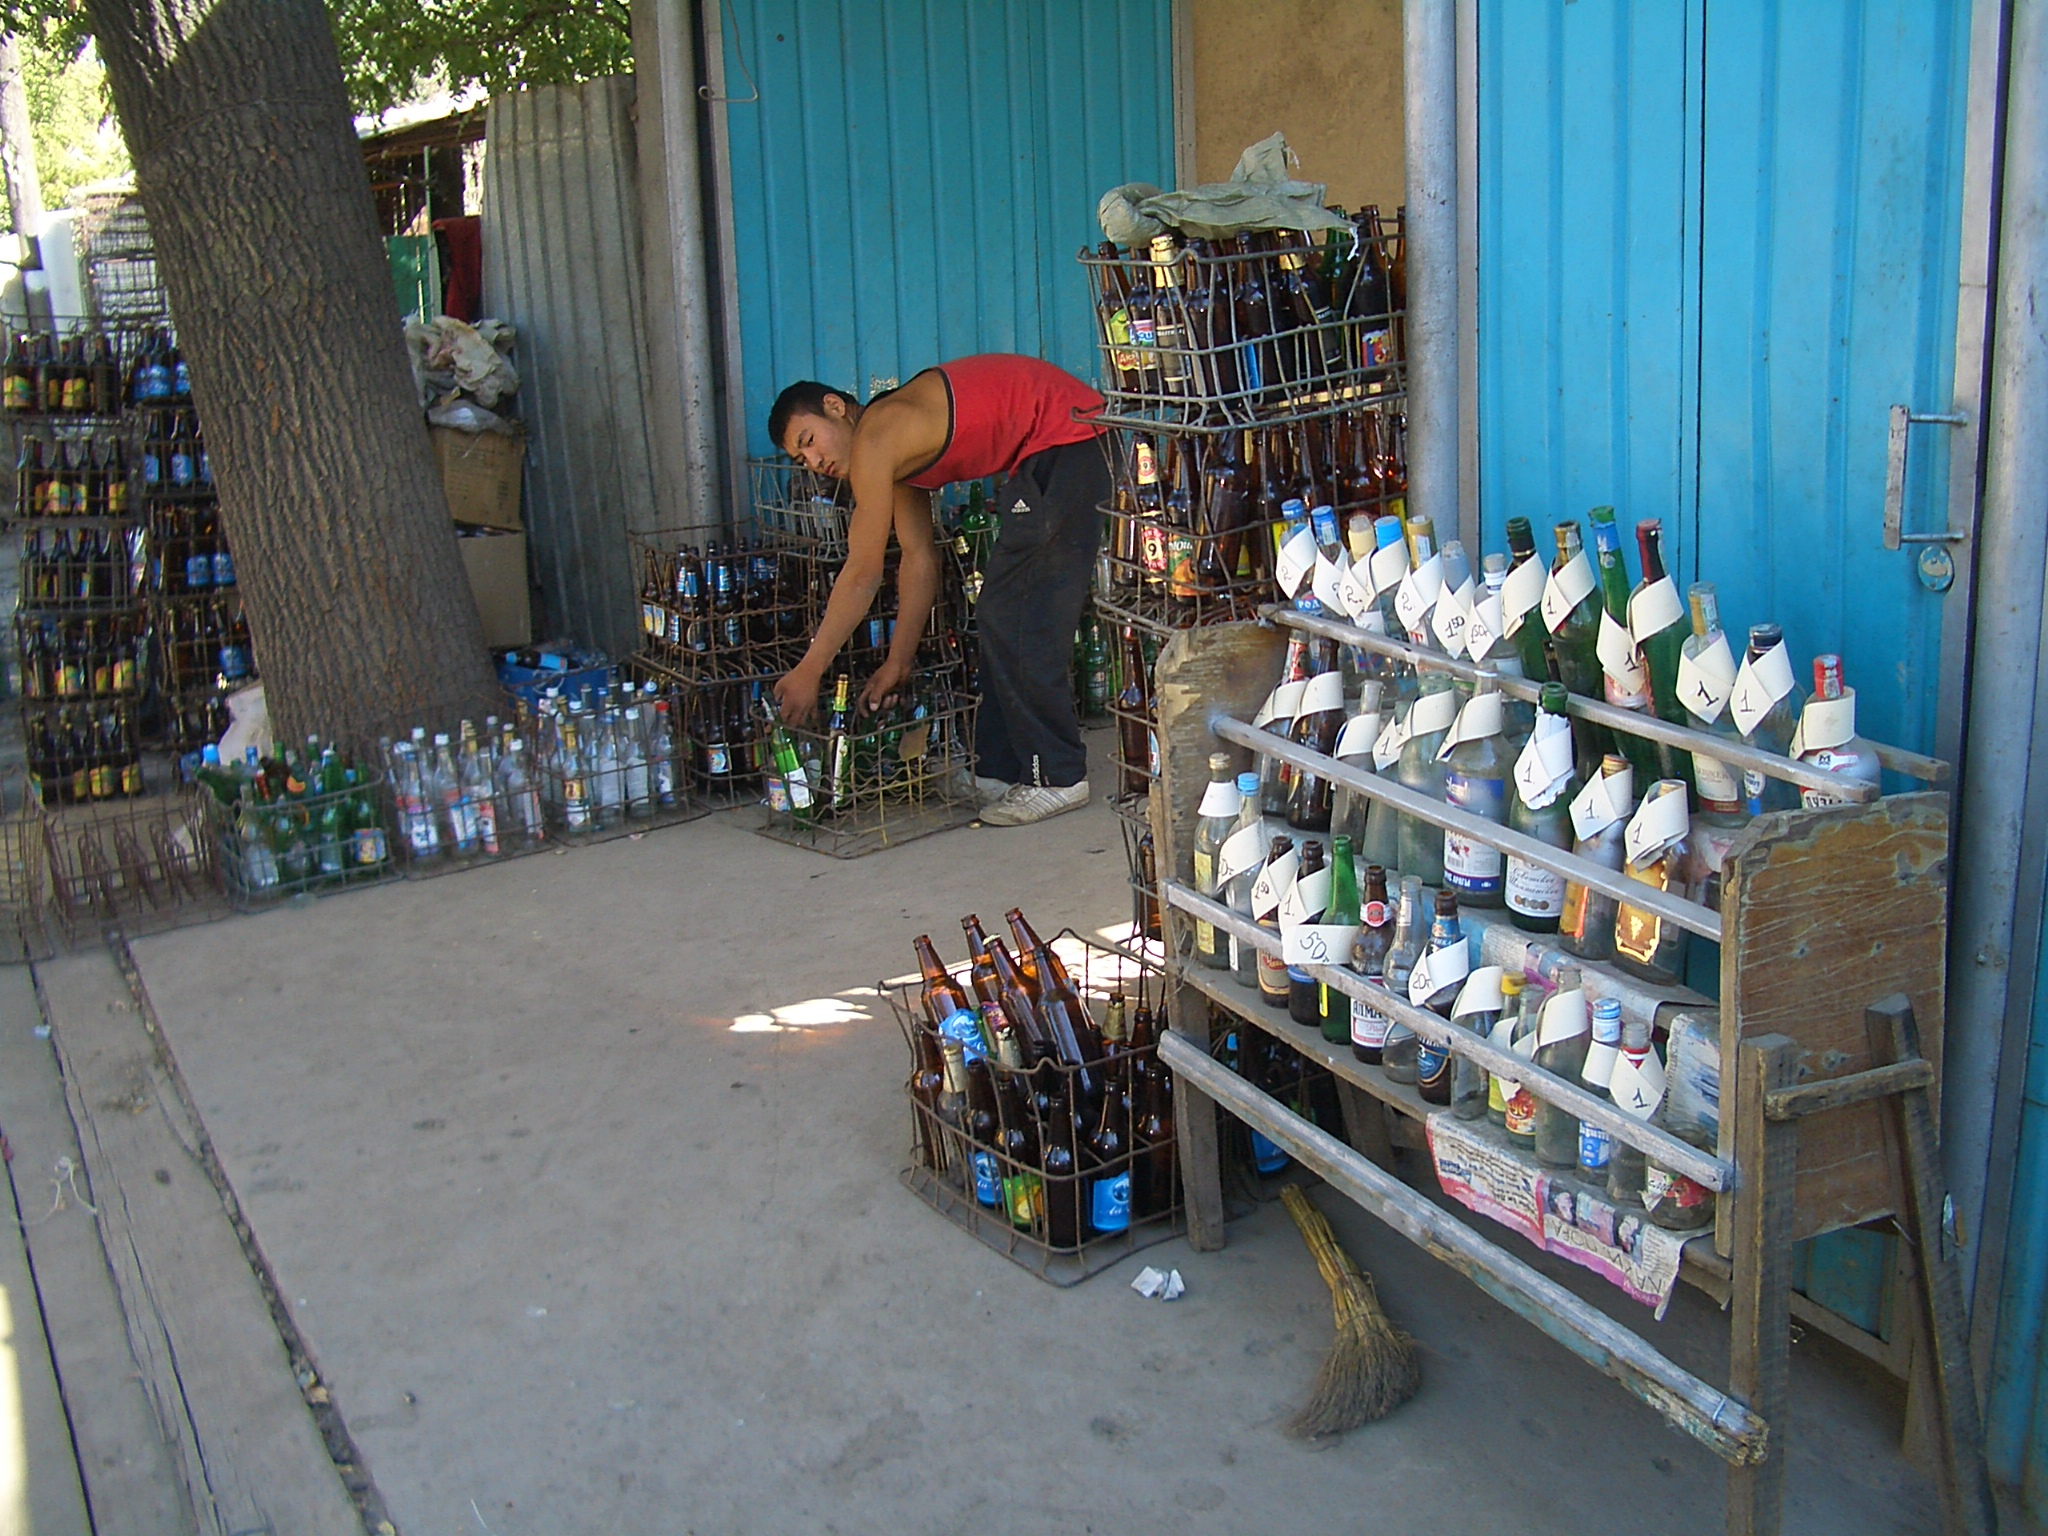 Man collects bottles outside bottle deposit center in Bishkek, Kyrgyzstan.